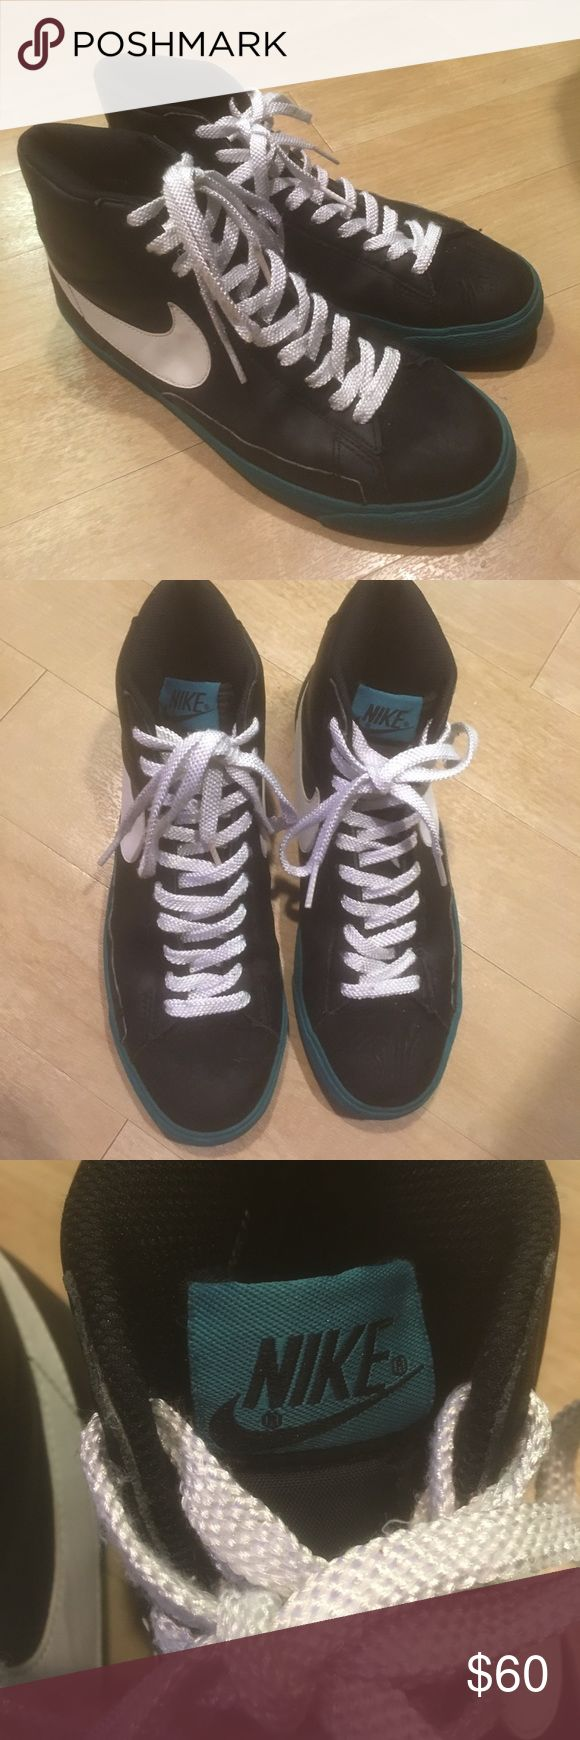 Nike Blazer High Top Sneakers - Black/Turquoise These are a rare pair of Nike Blazers in the Black/Freshwater colorway. Show some signs of wear/wrinkles. Size 11. Nike Shoes Sneakers